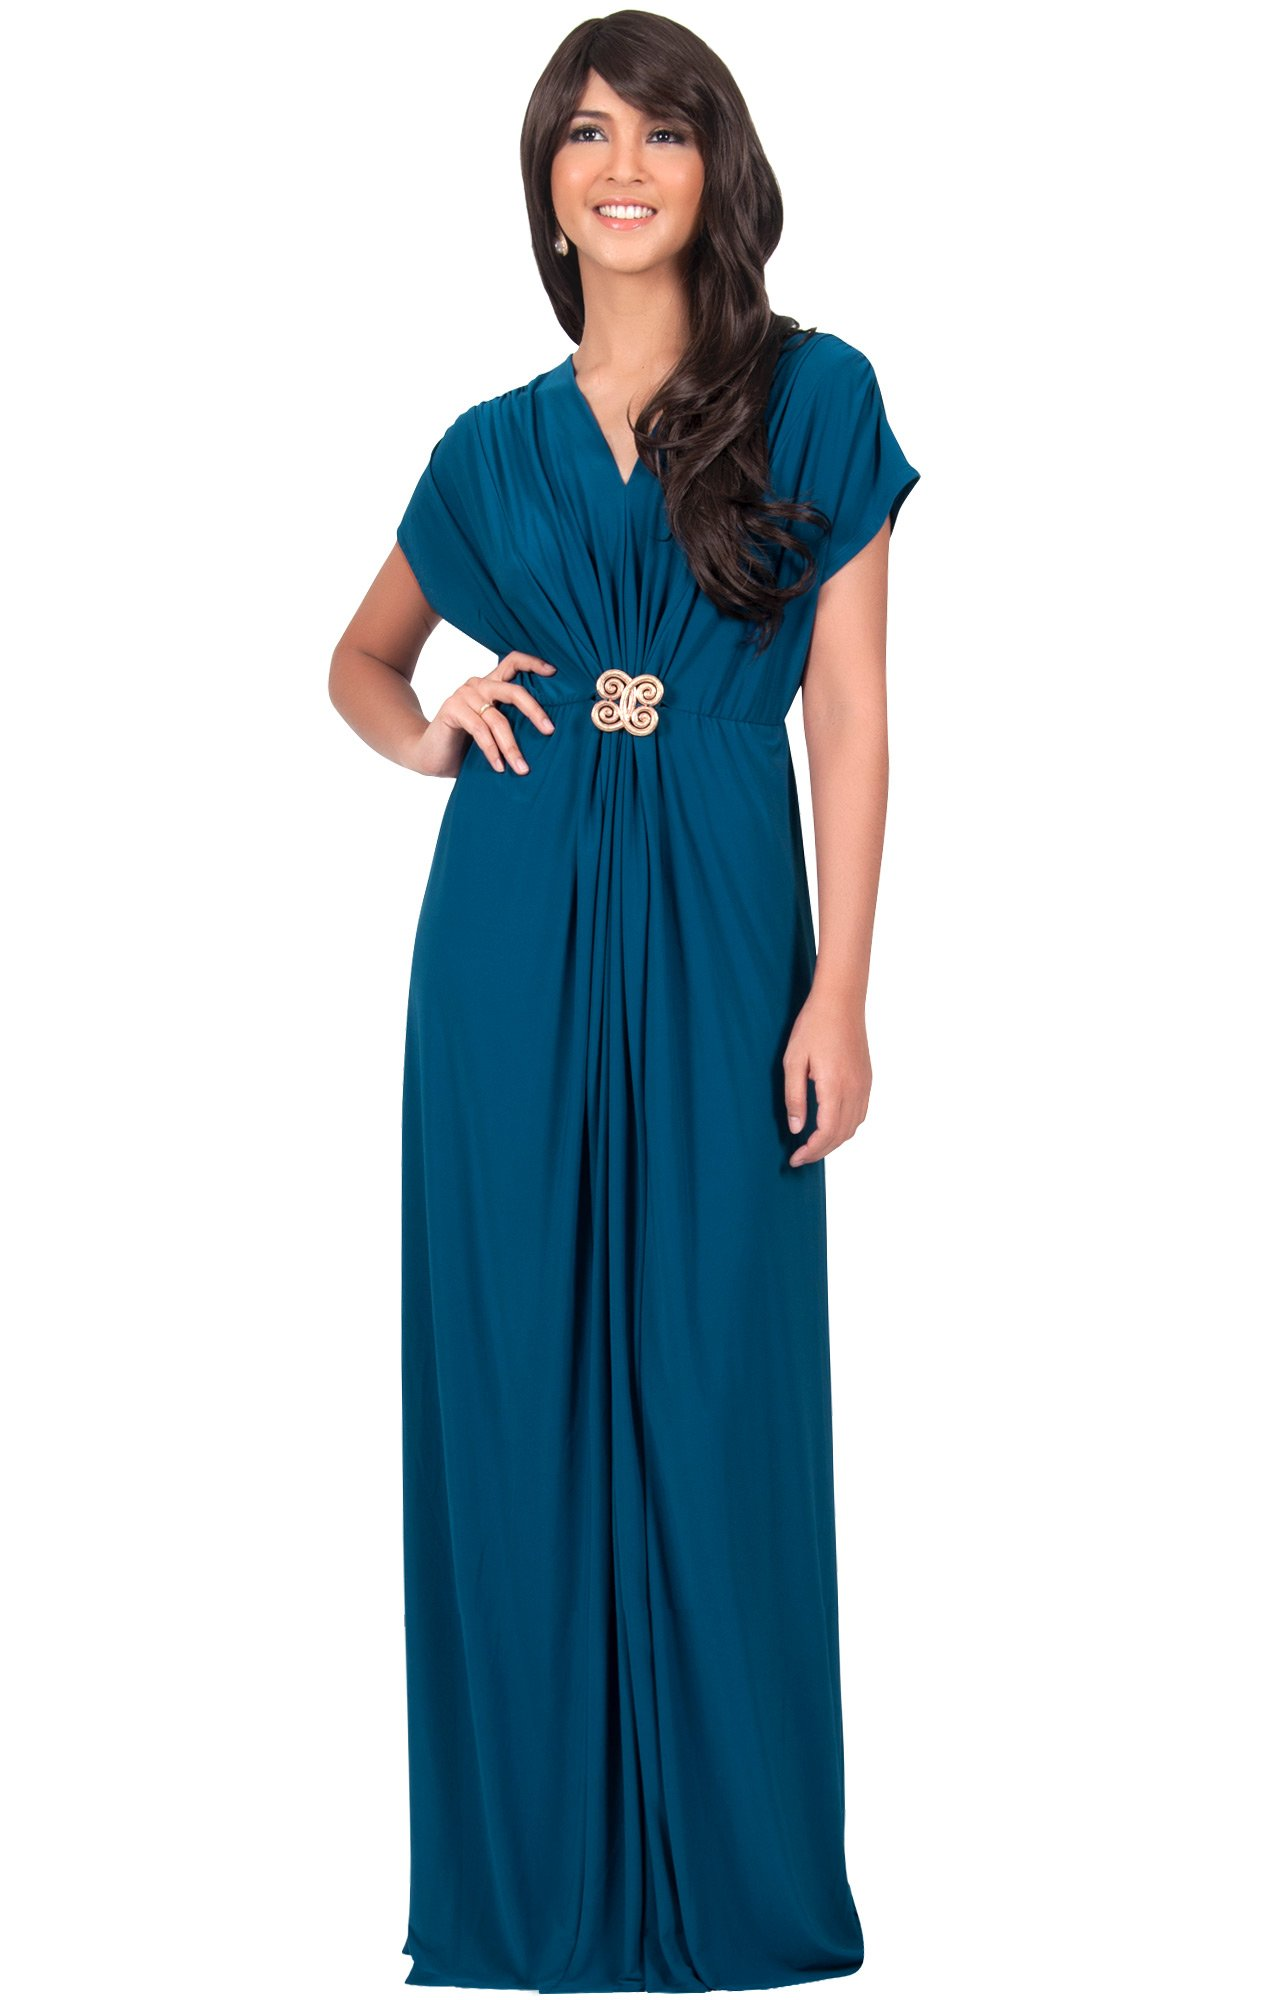 KOH KOH Womens Long Floor Length V-neck Short Sleeve Flowy Summer Spring Party Bridesmaids Semi Formal Maternity Prom Wedding Gown Gowns Maxi Dress Dresses, Blue Teal L 12-14